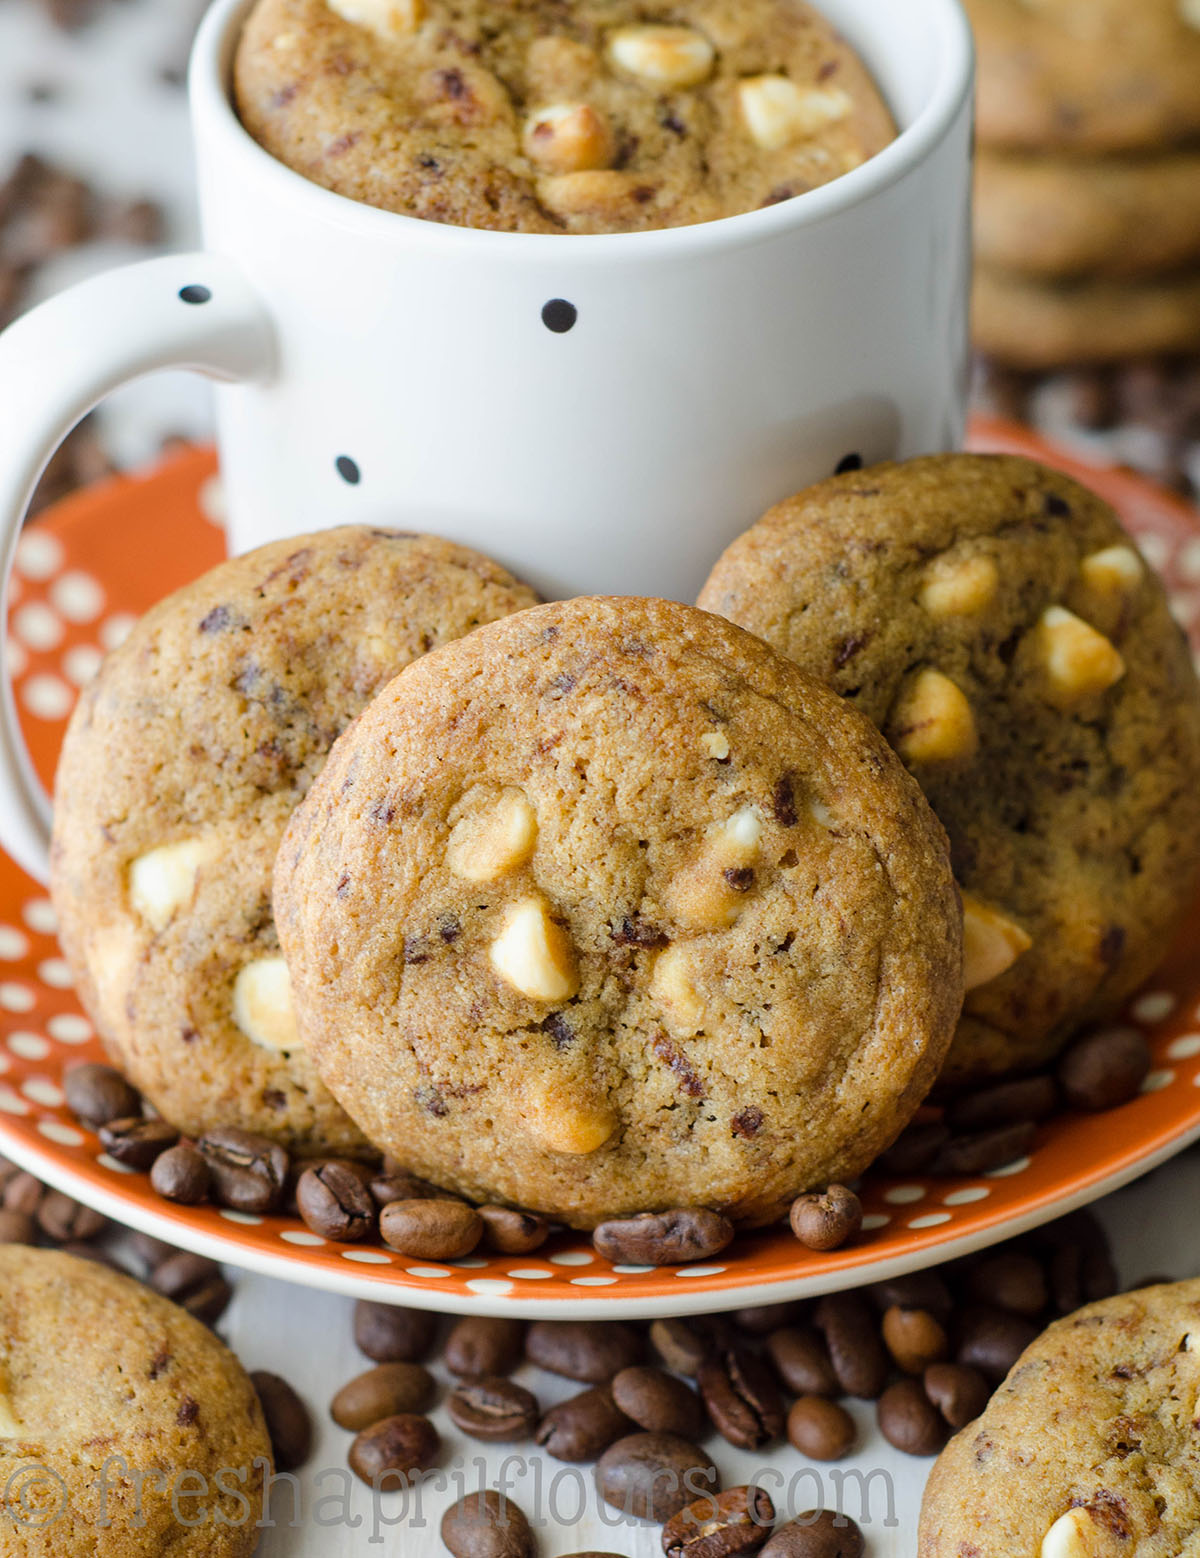 cappuccino cookies on a plate with coffee beans and a mug of coffee